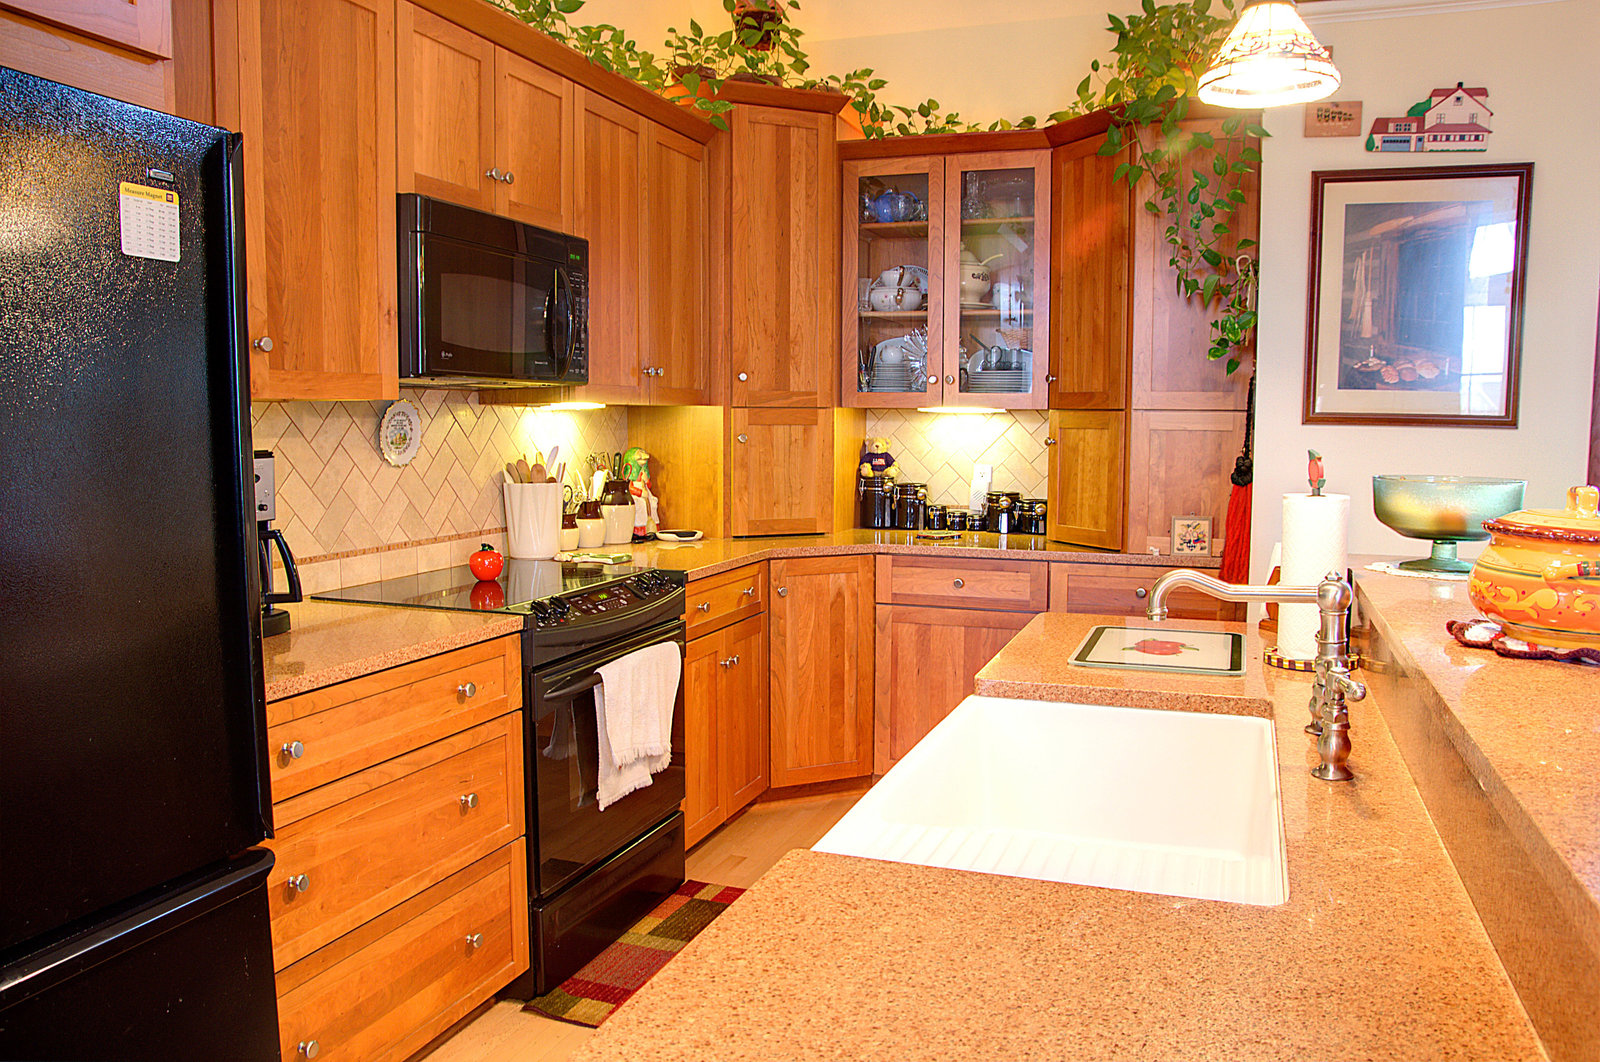 Real Estate Kitchen